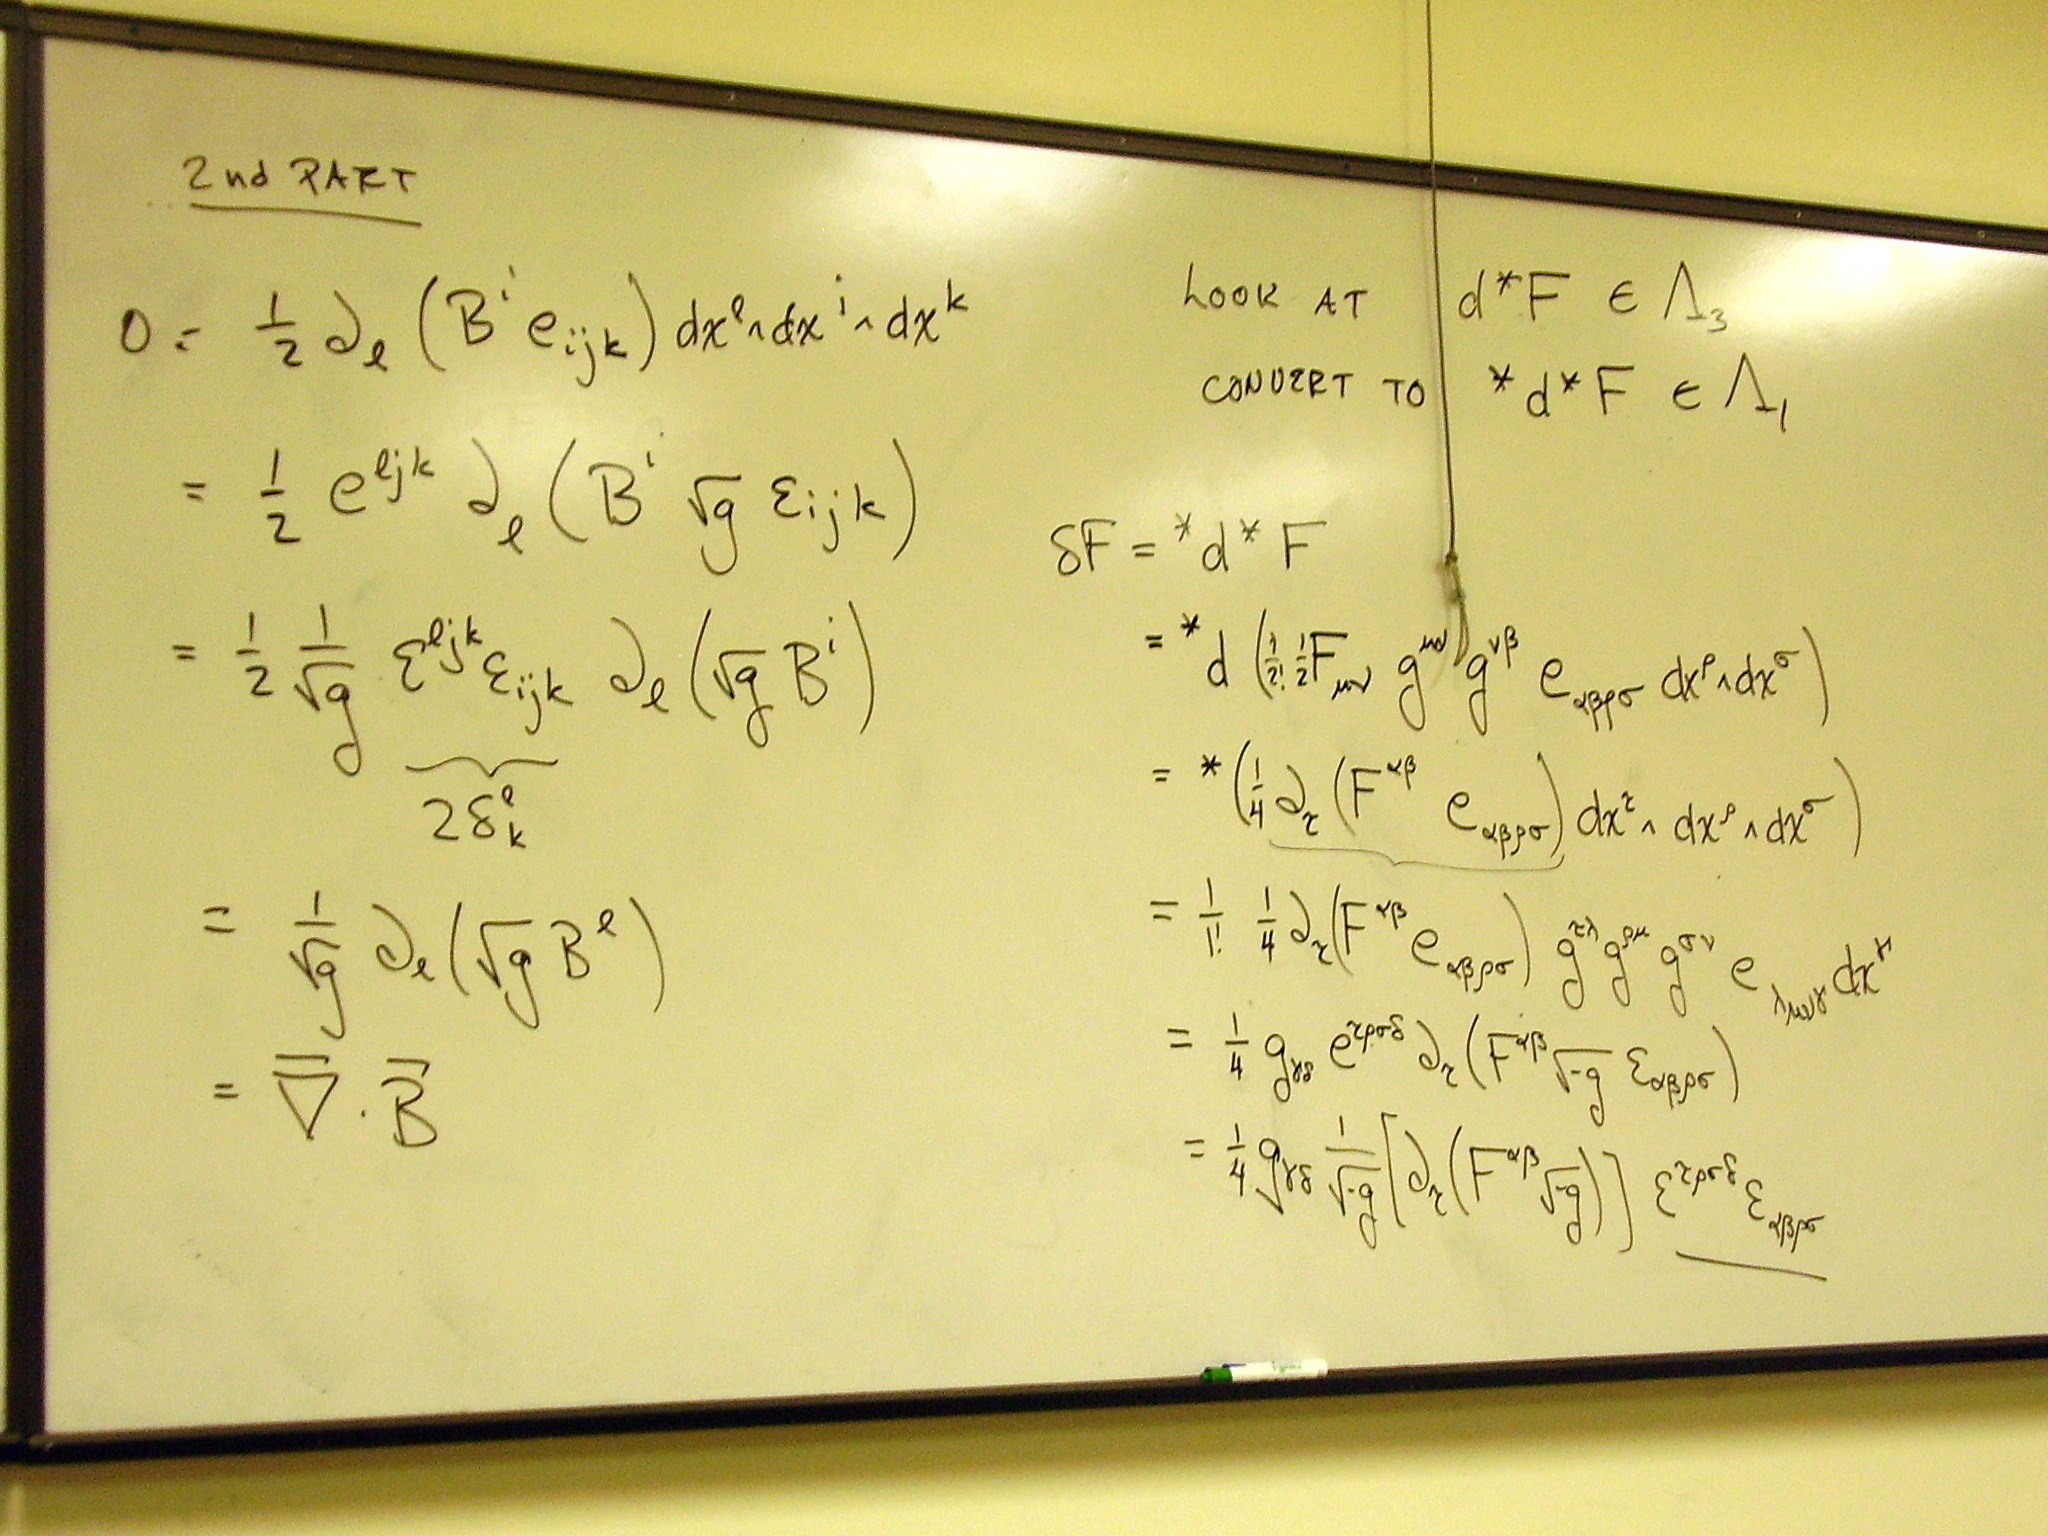 2048x1536 The inhomogeneous Maxwell equations result. January 12 Lecture, slide l